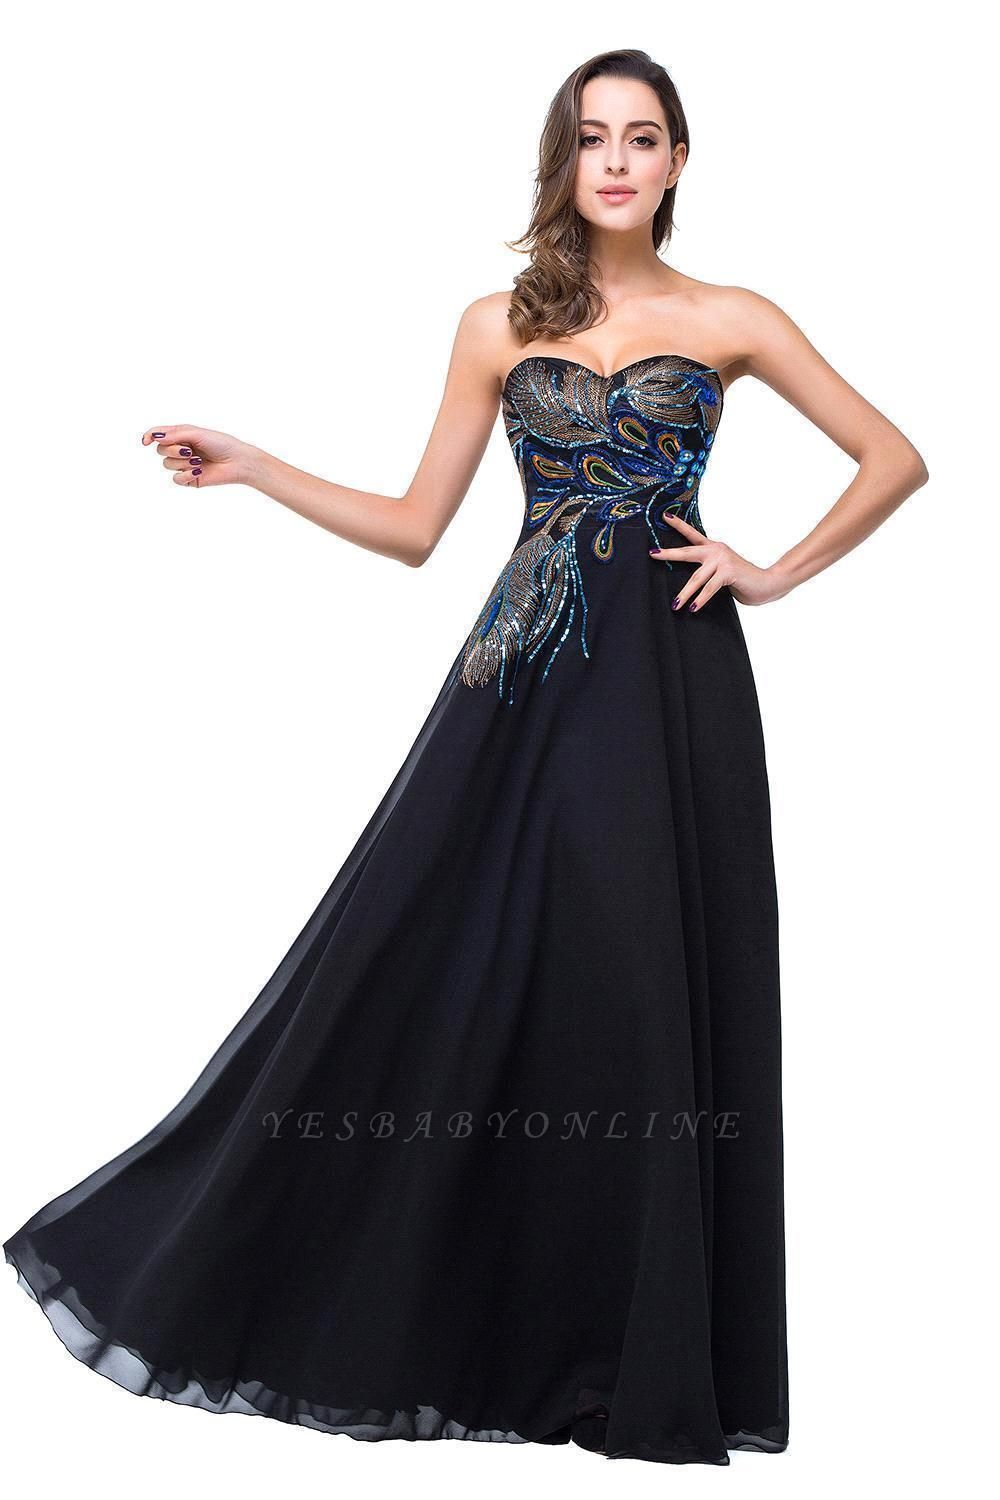 A-line Sweetheart Black Cheap Evening Dress with Embroidery